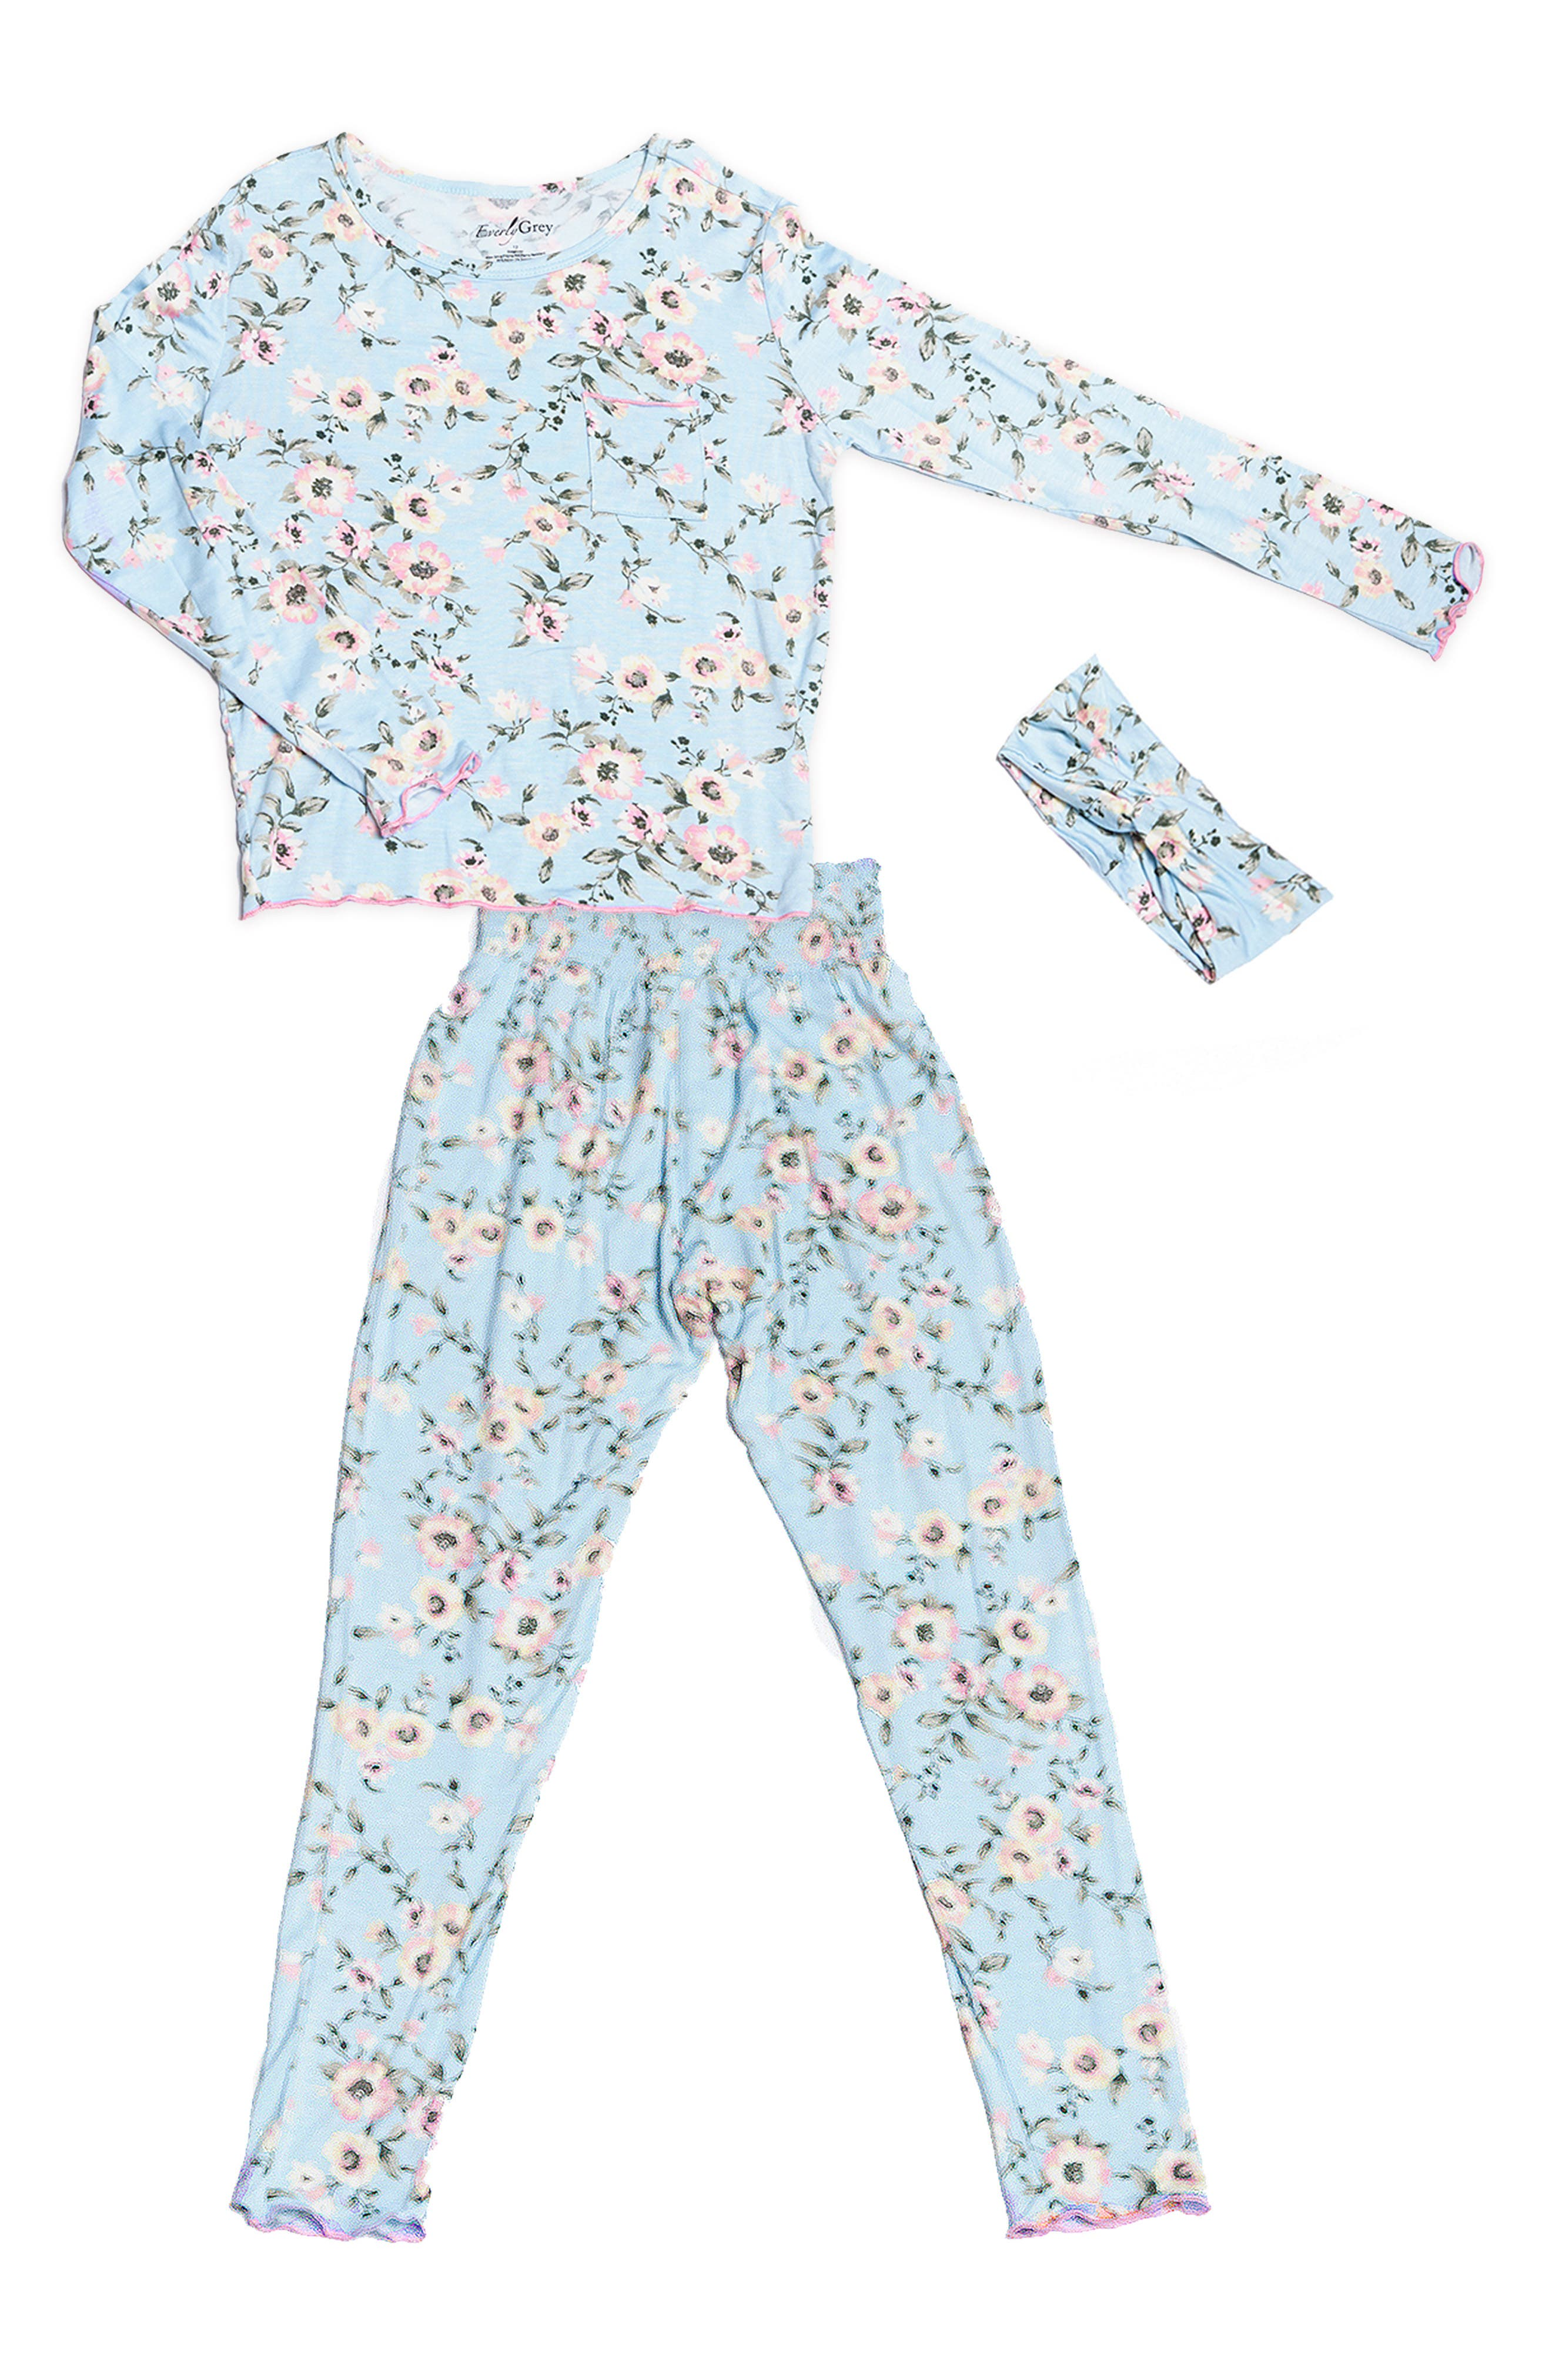 Baby Grey Charlie Fitted Two-Piece Pajamas \u0026 Head Wrap Set (Baby) Girl Sleepwear | Nordstrom